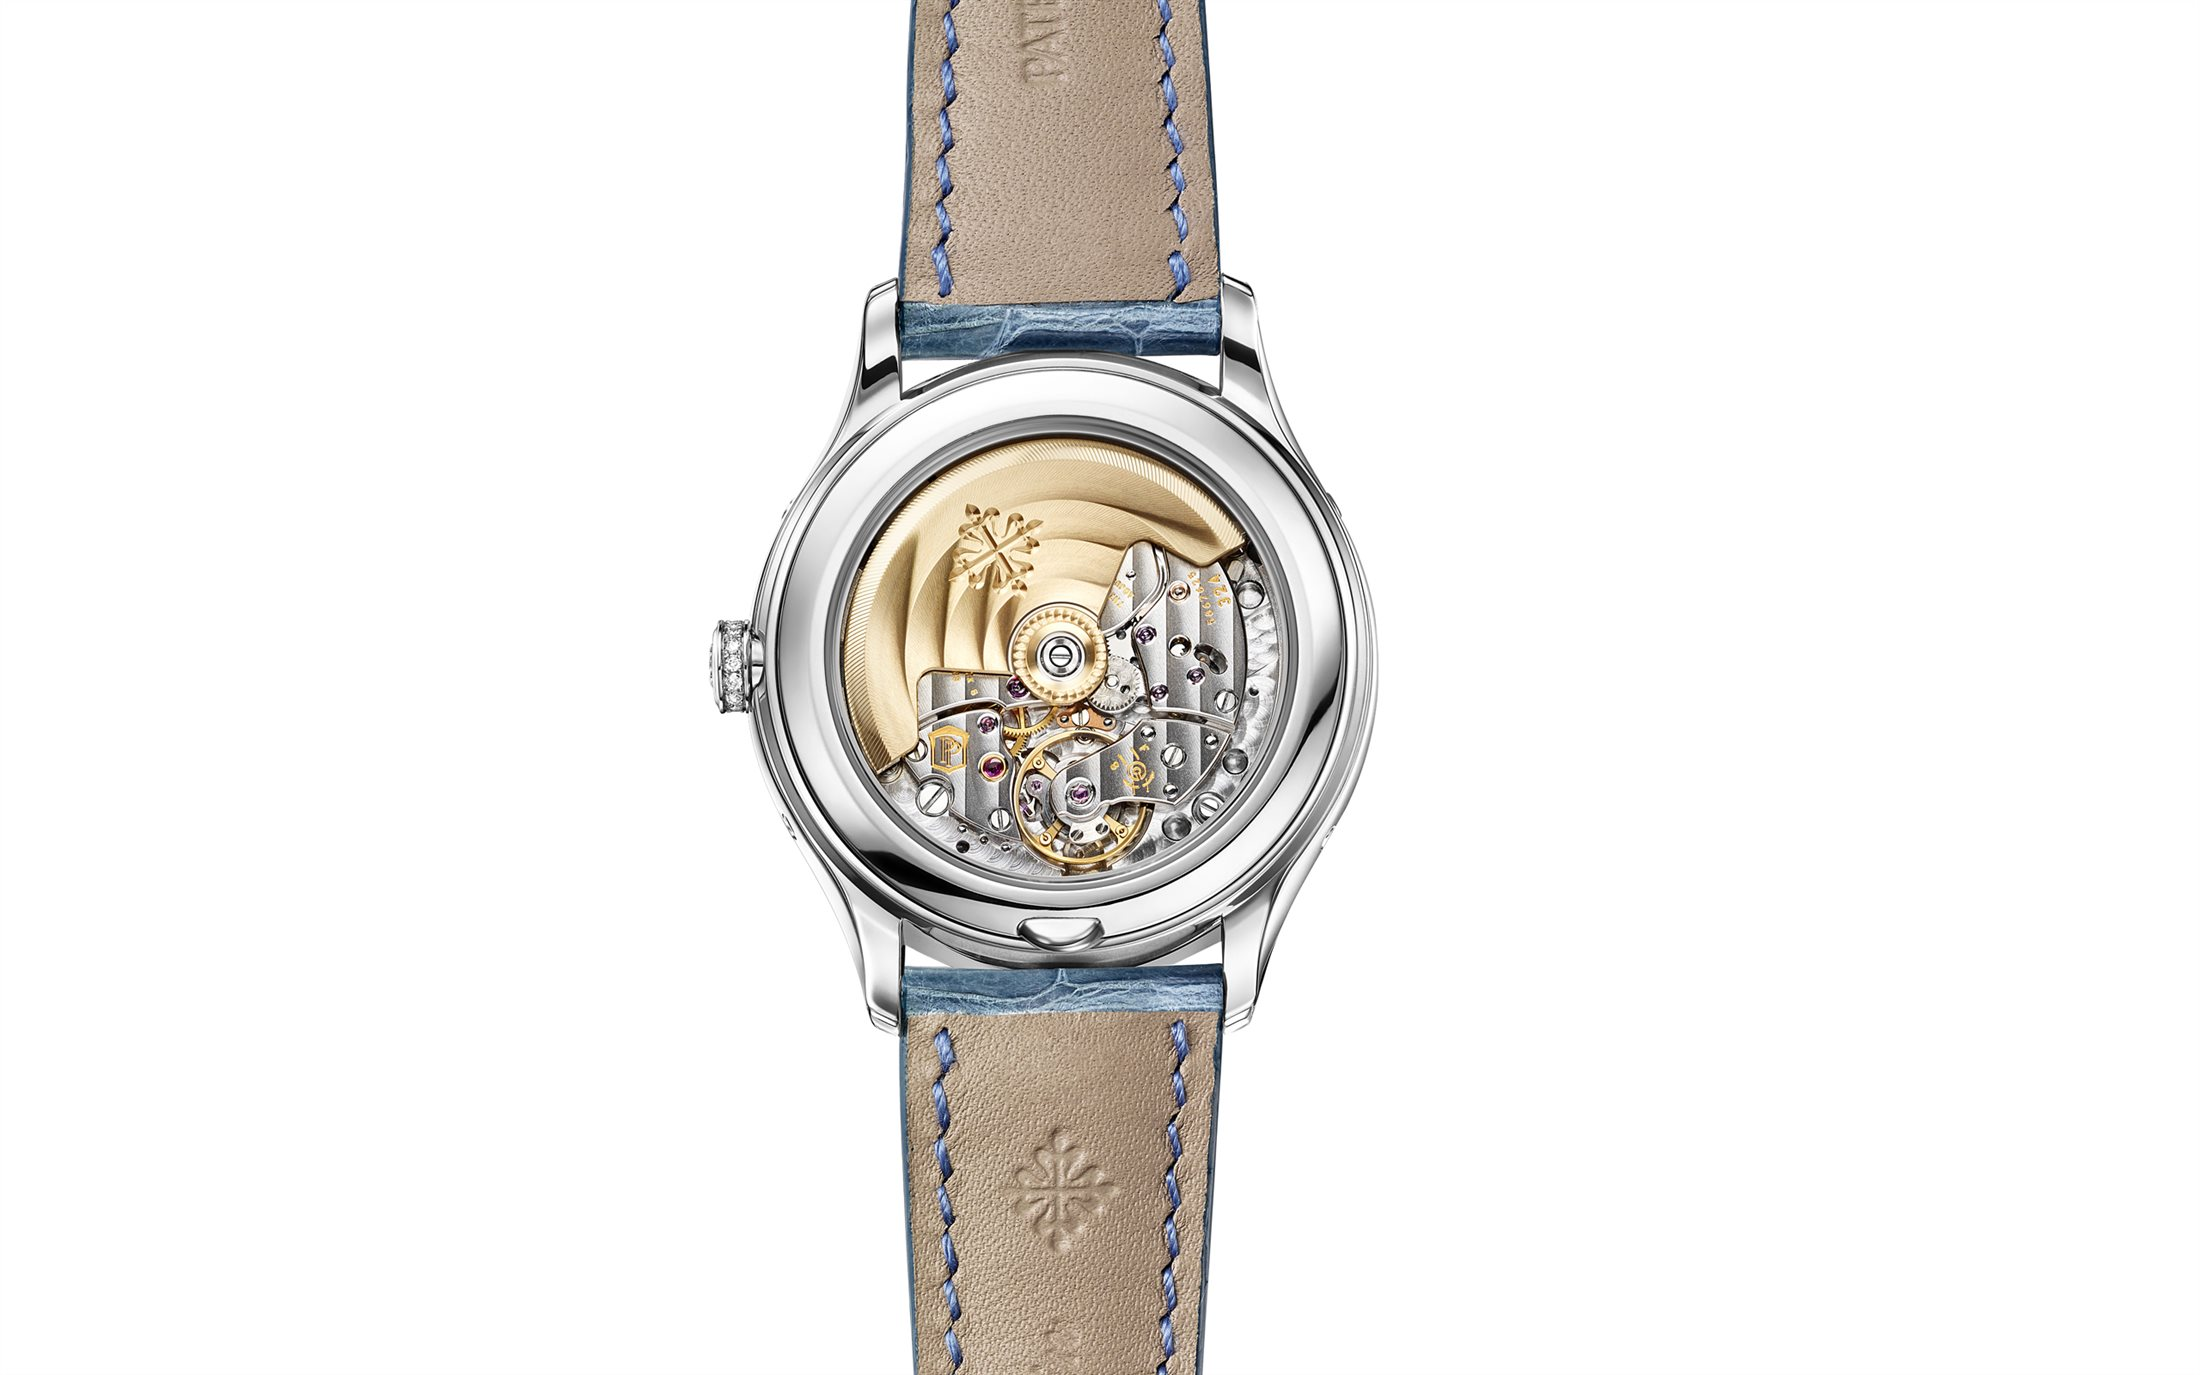 The beautiful and precise movement could be viewed through the transparent caseback.